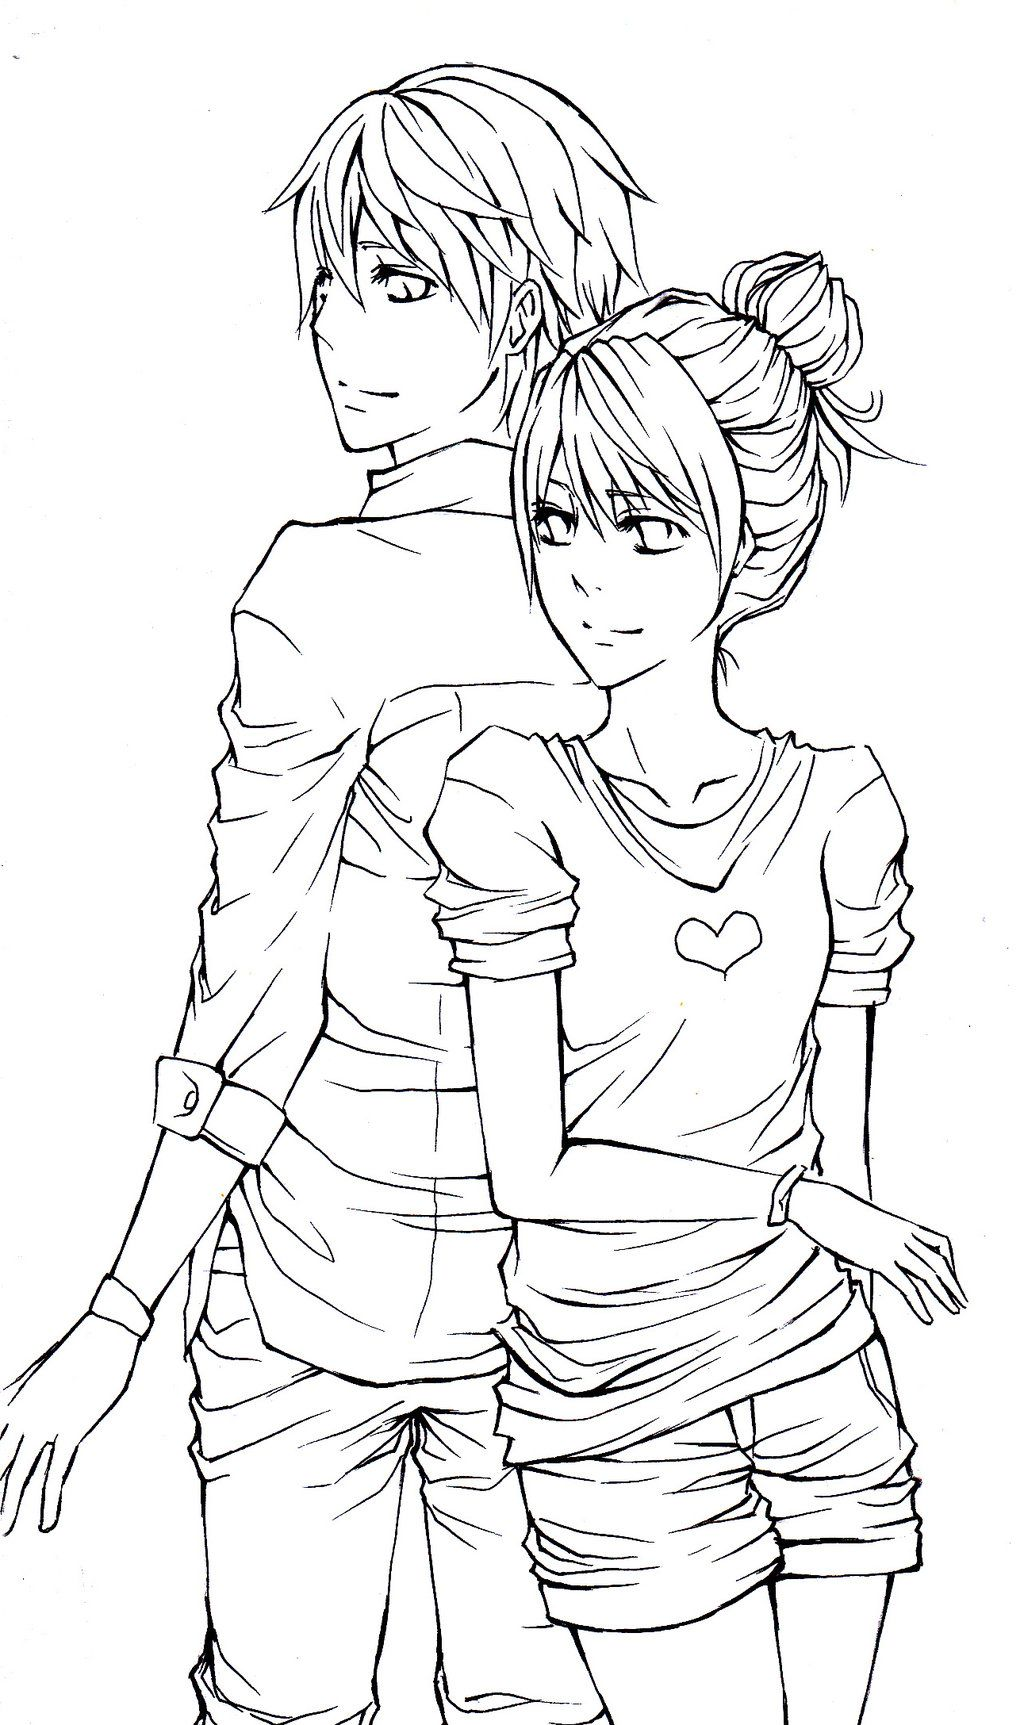 Anime Couple Line Art Drawings